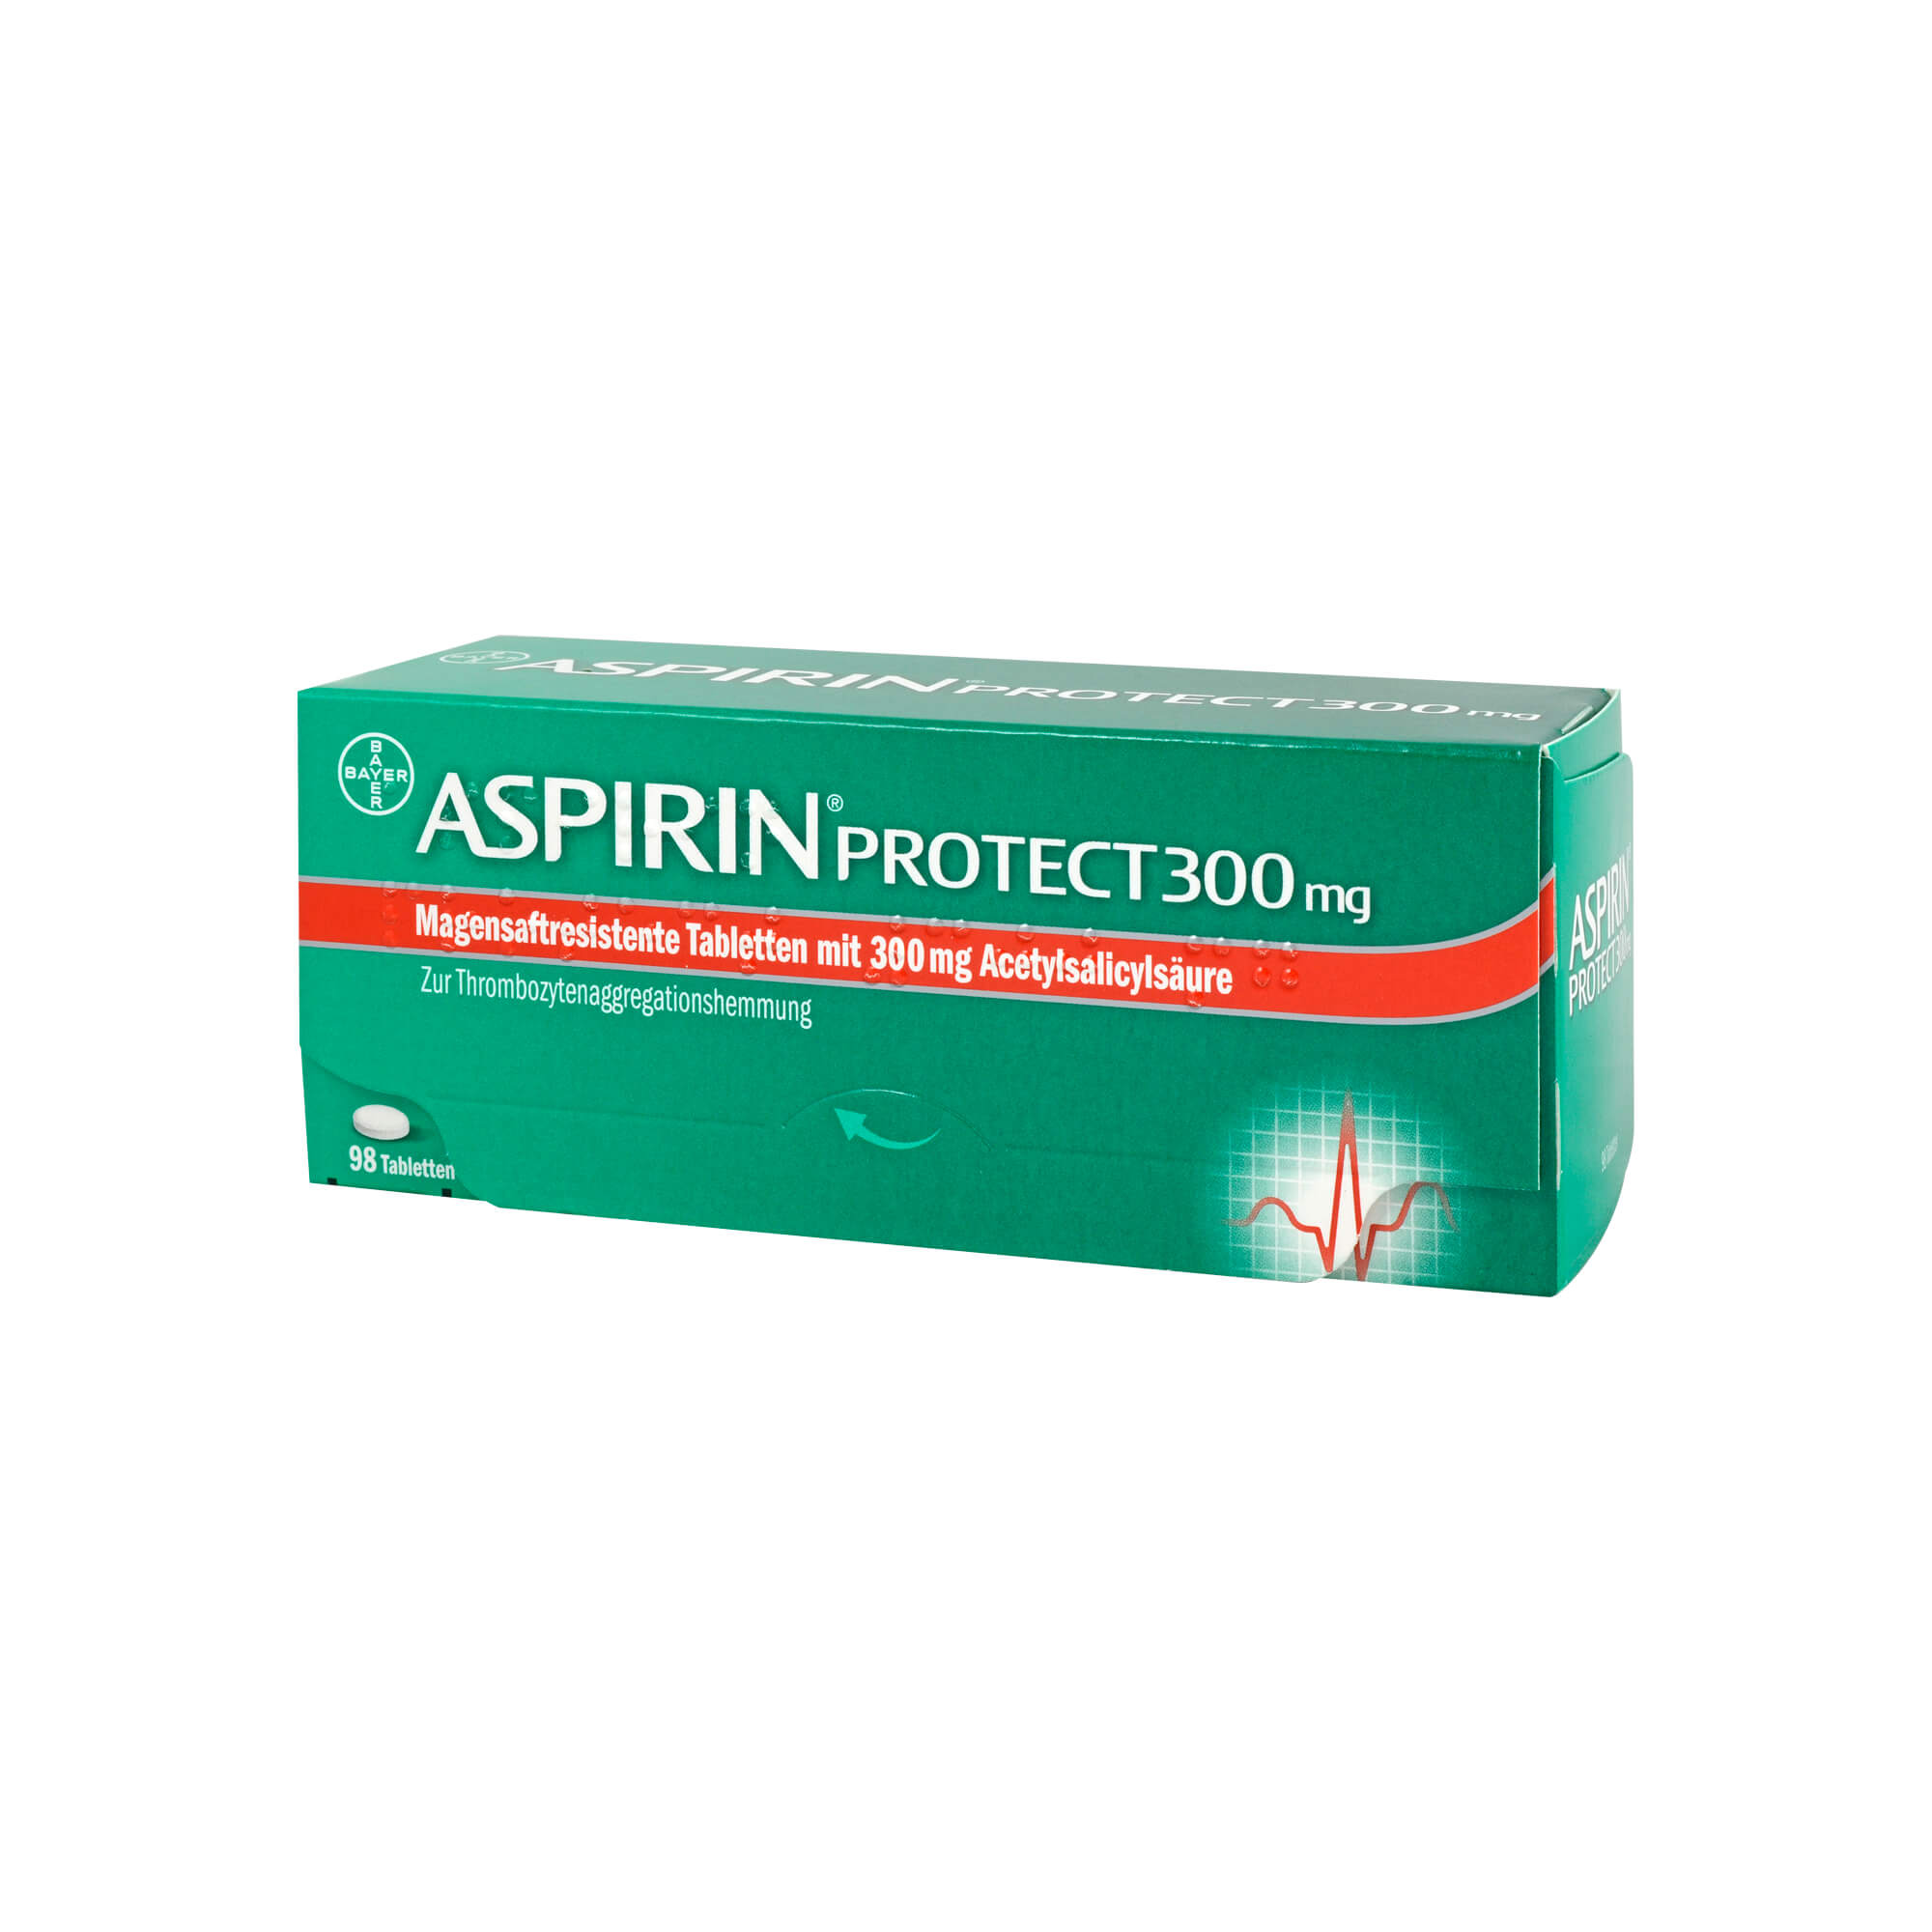 Aspirin protect 300 mg